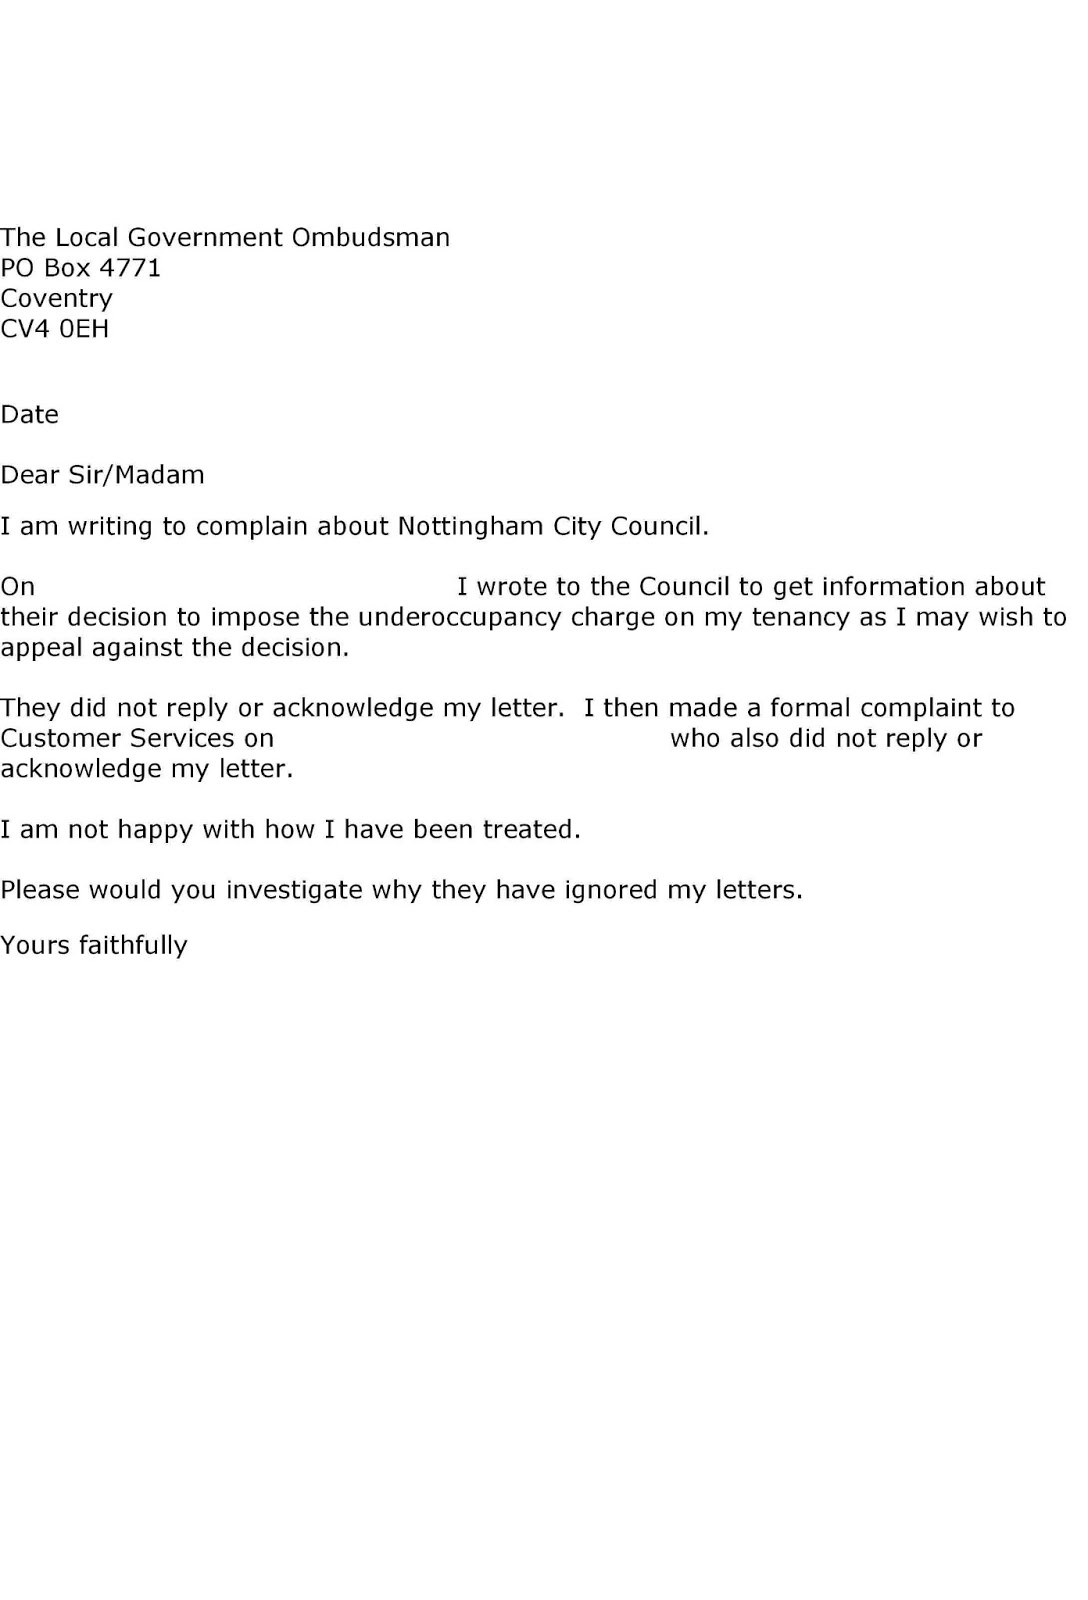 How to write a letter of complaint to the city